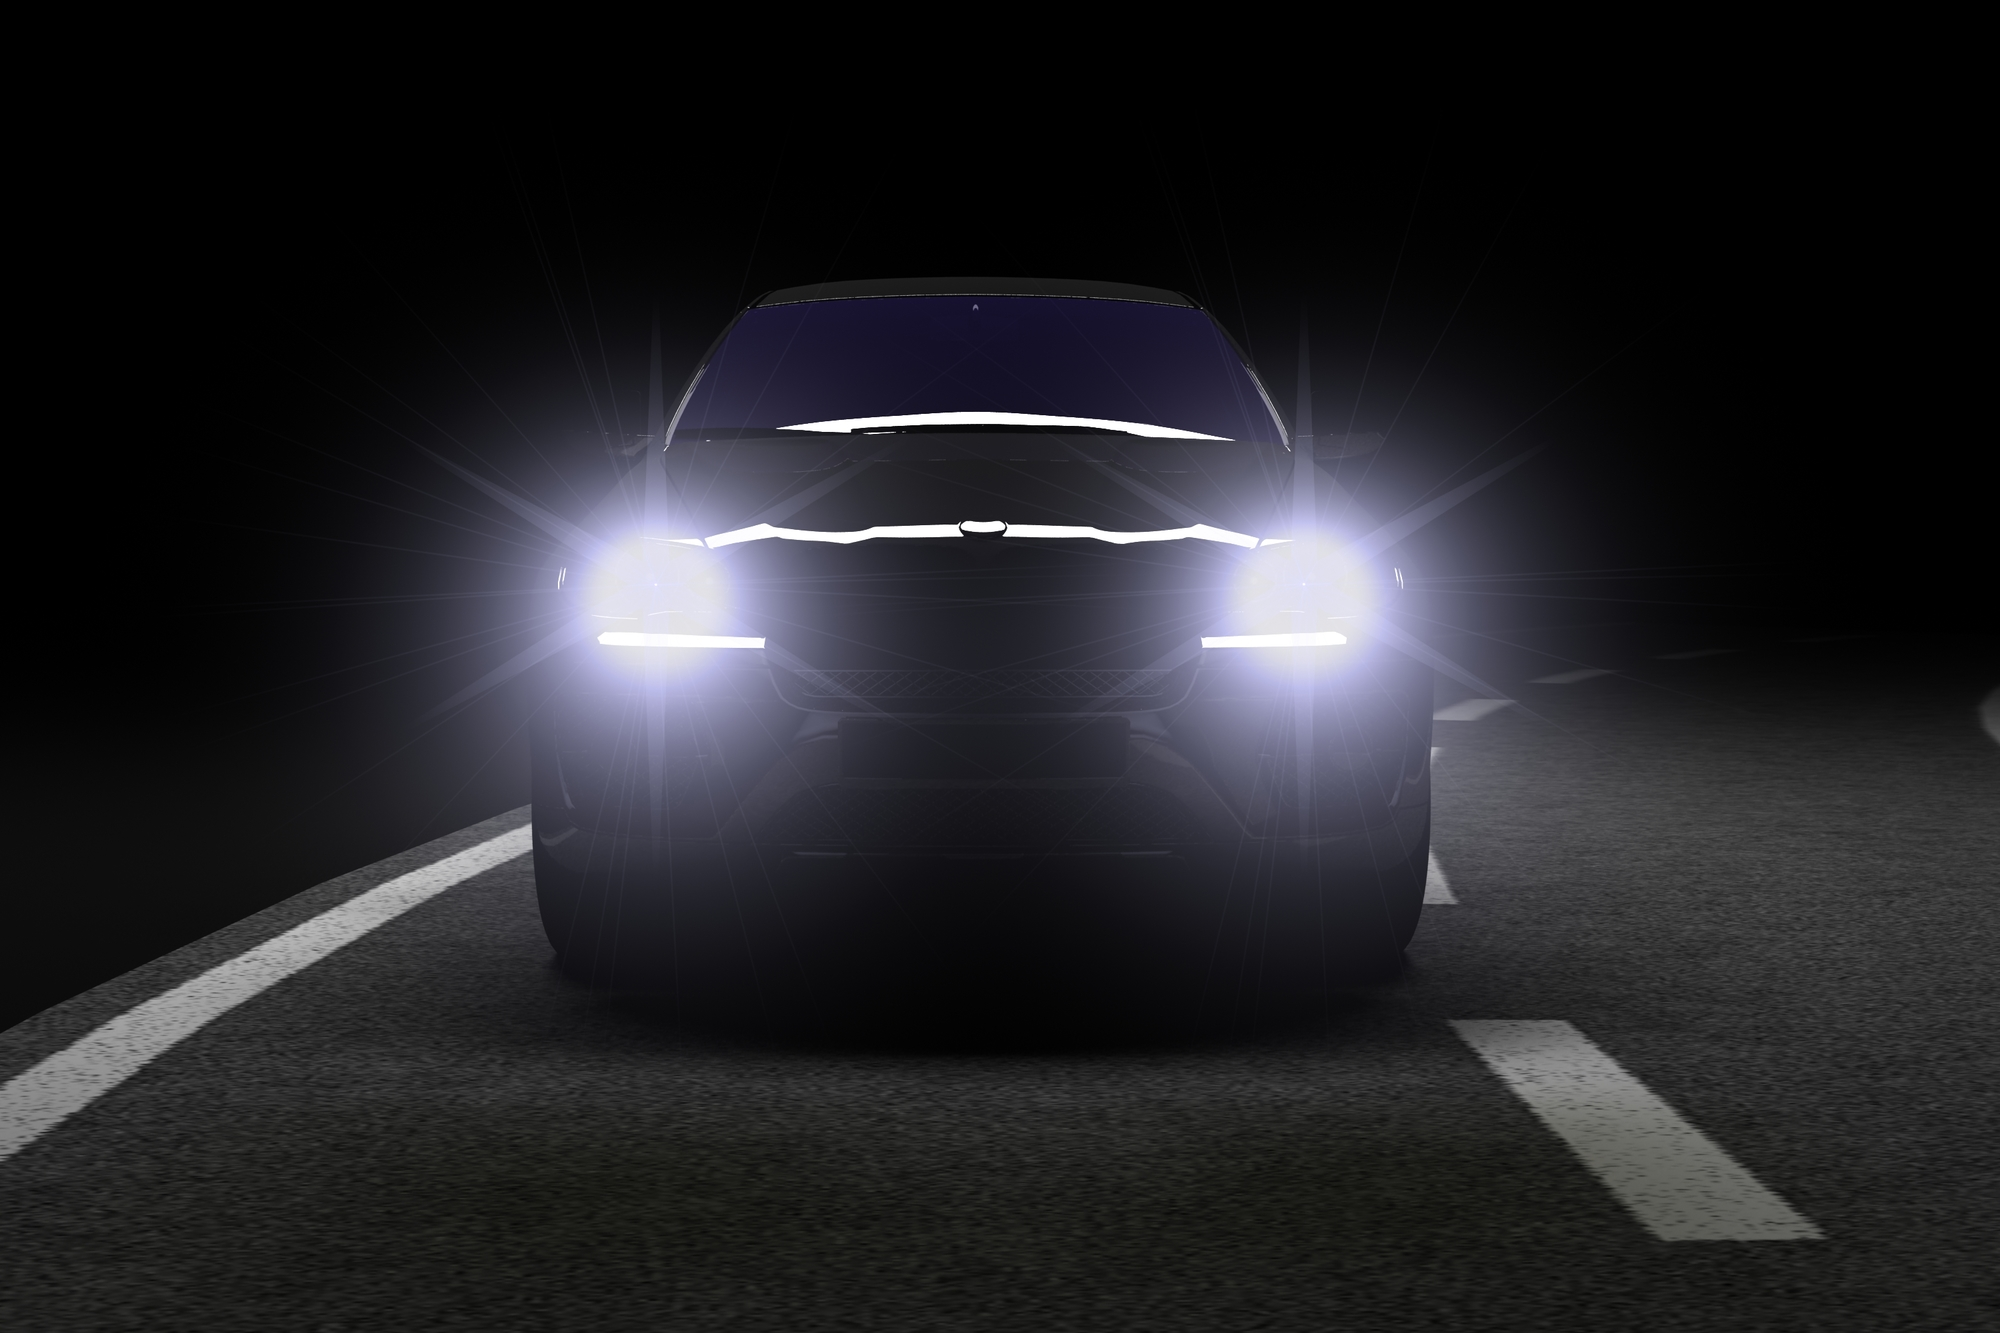 Car silhouette with shiny best led headlights in black night